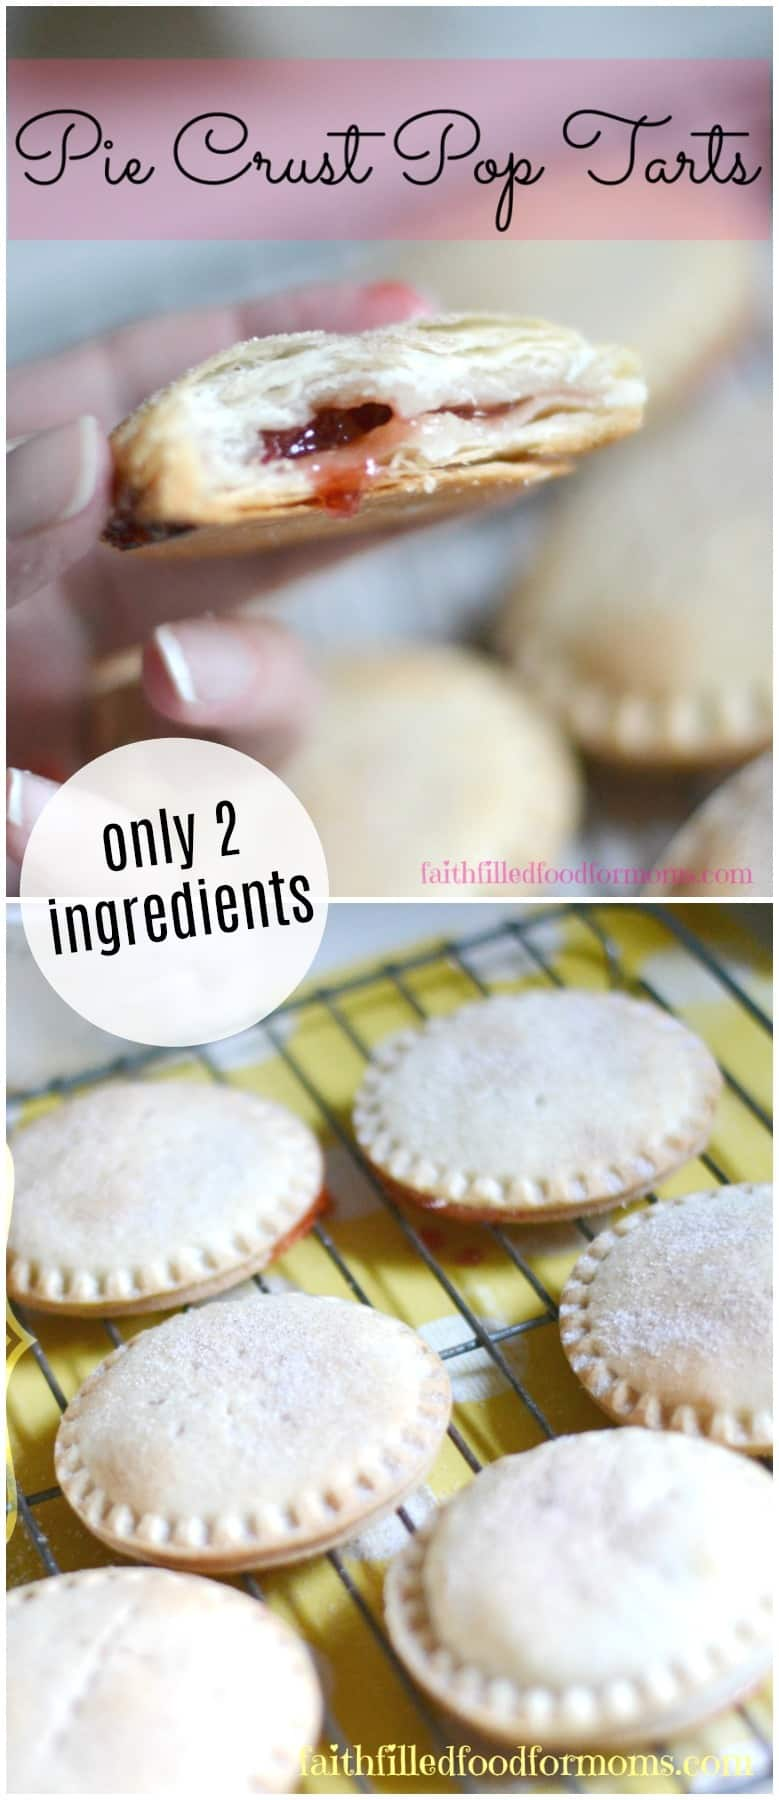 Easy Pie Crust Pop Tarts. Made in minutes and only 2 ingredients!